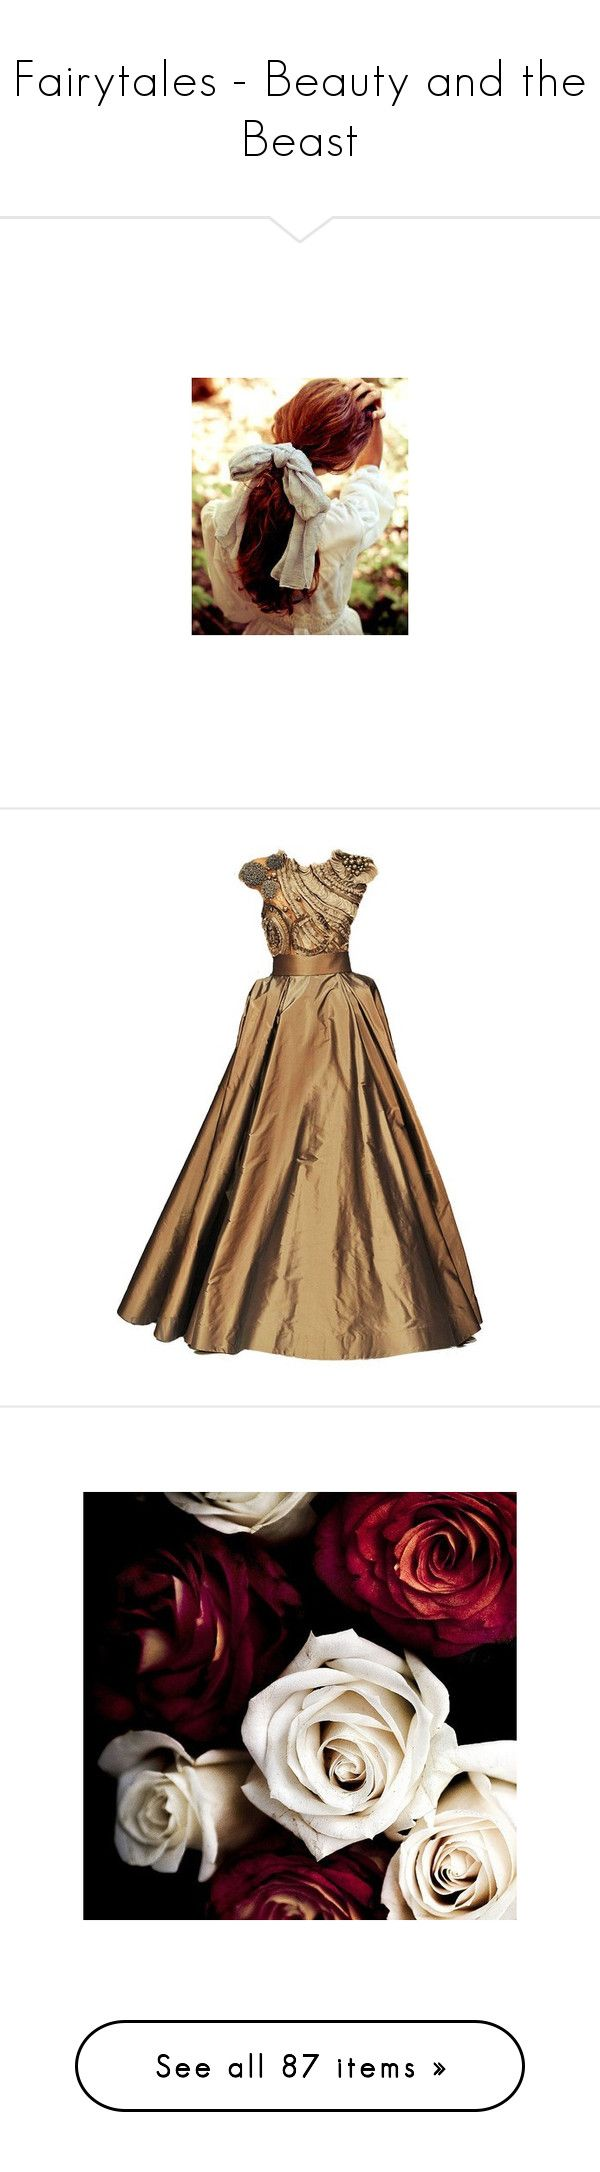 """""""Fairytales - Beauty and the Beast"""" by kerry6590 ❤ liked on Polyvore featuring hair, backgrounds, pictures, people, pics, dresses, gowns, long dresses, ball gowns and brown evening dress"""